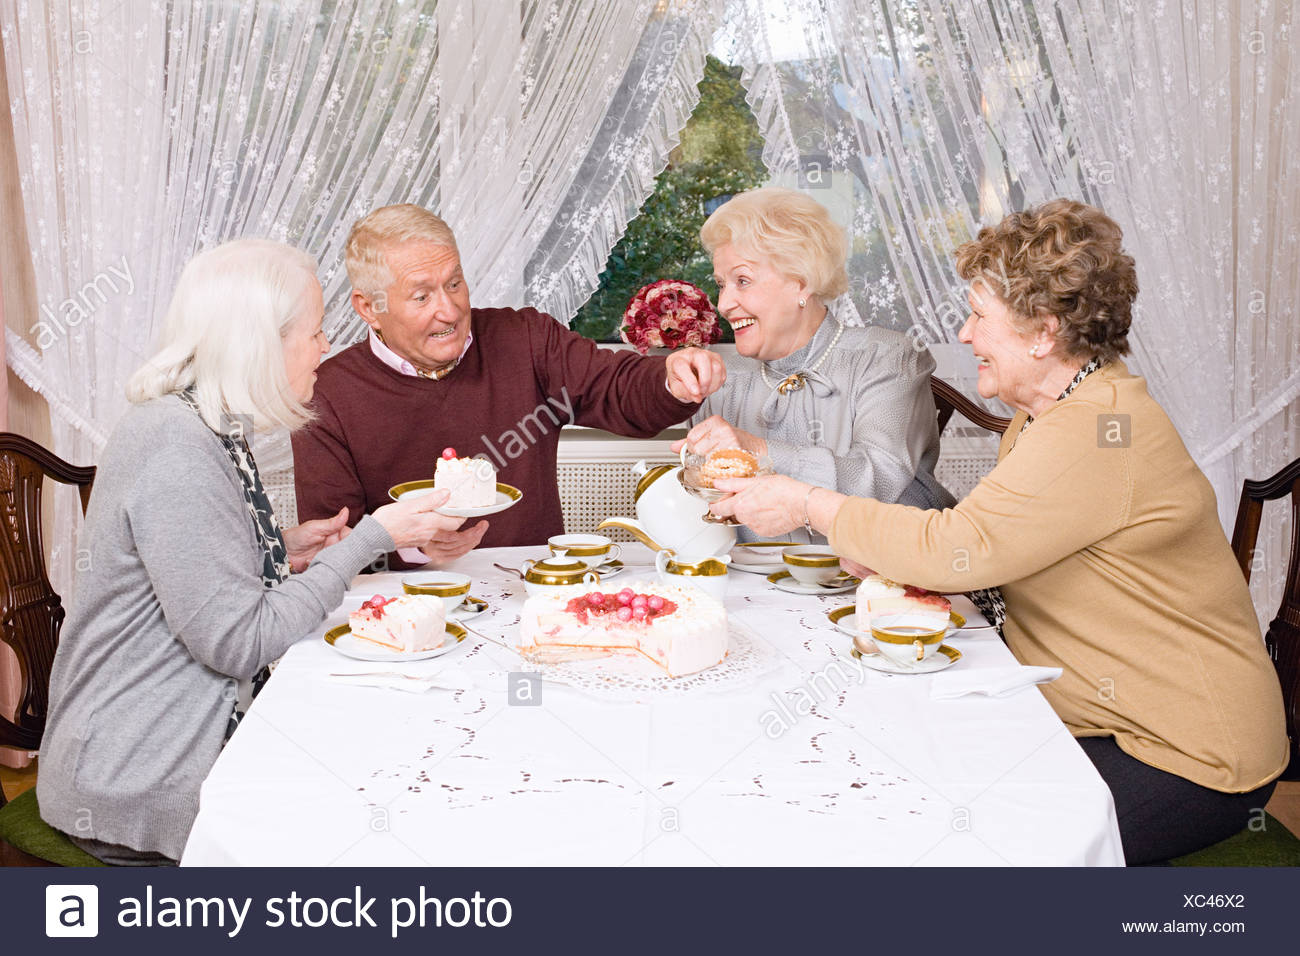 Friends having afternoon tea - Stock Image